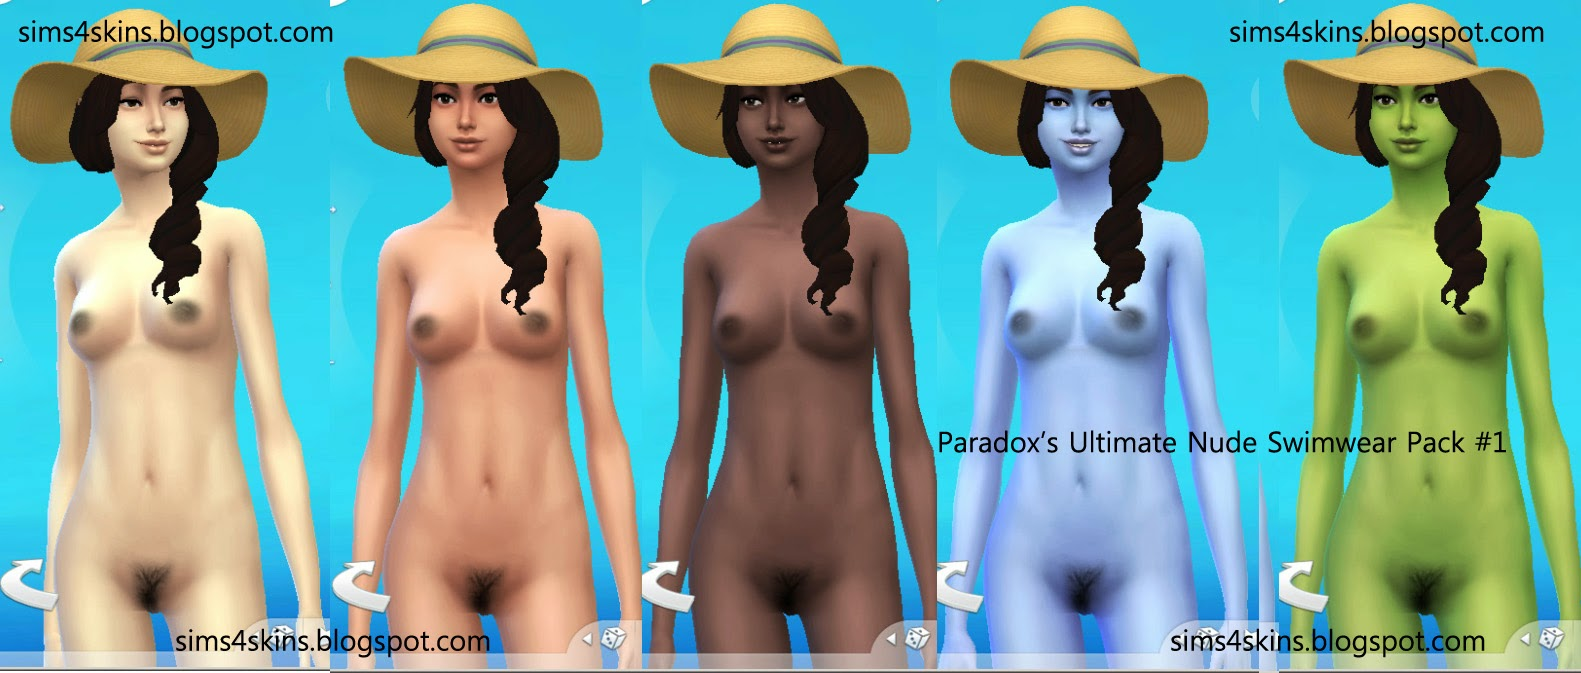 The sims2 xxx mod pics erotic photo